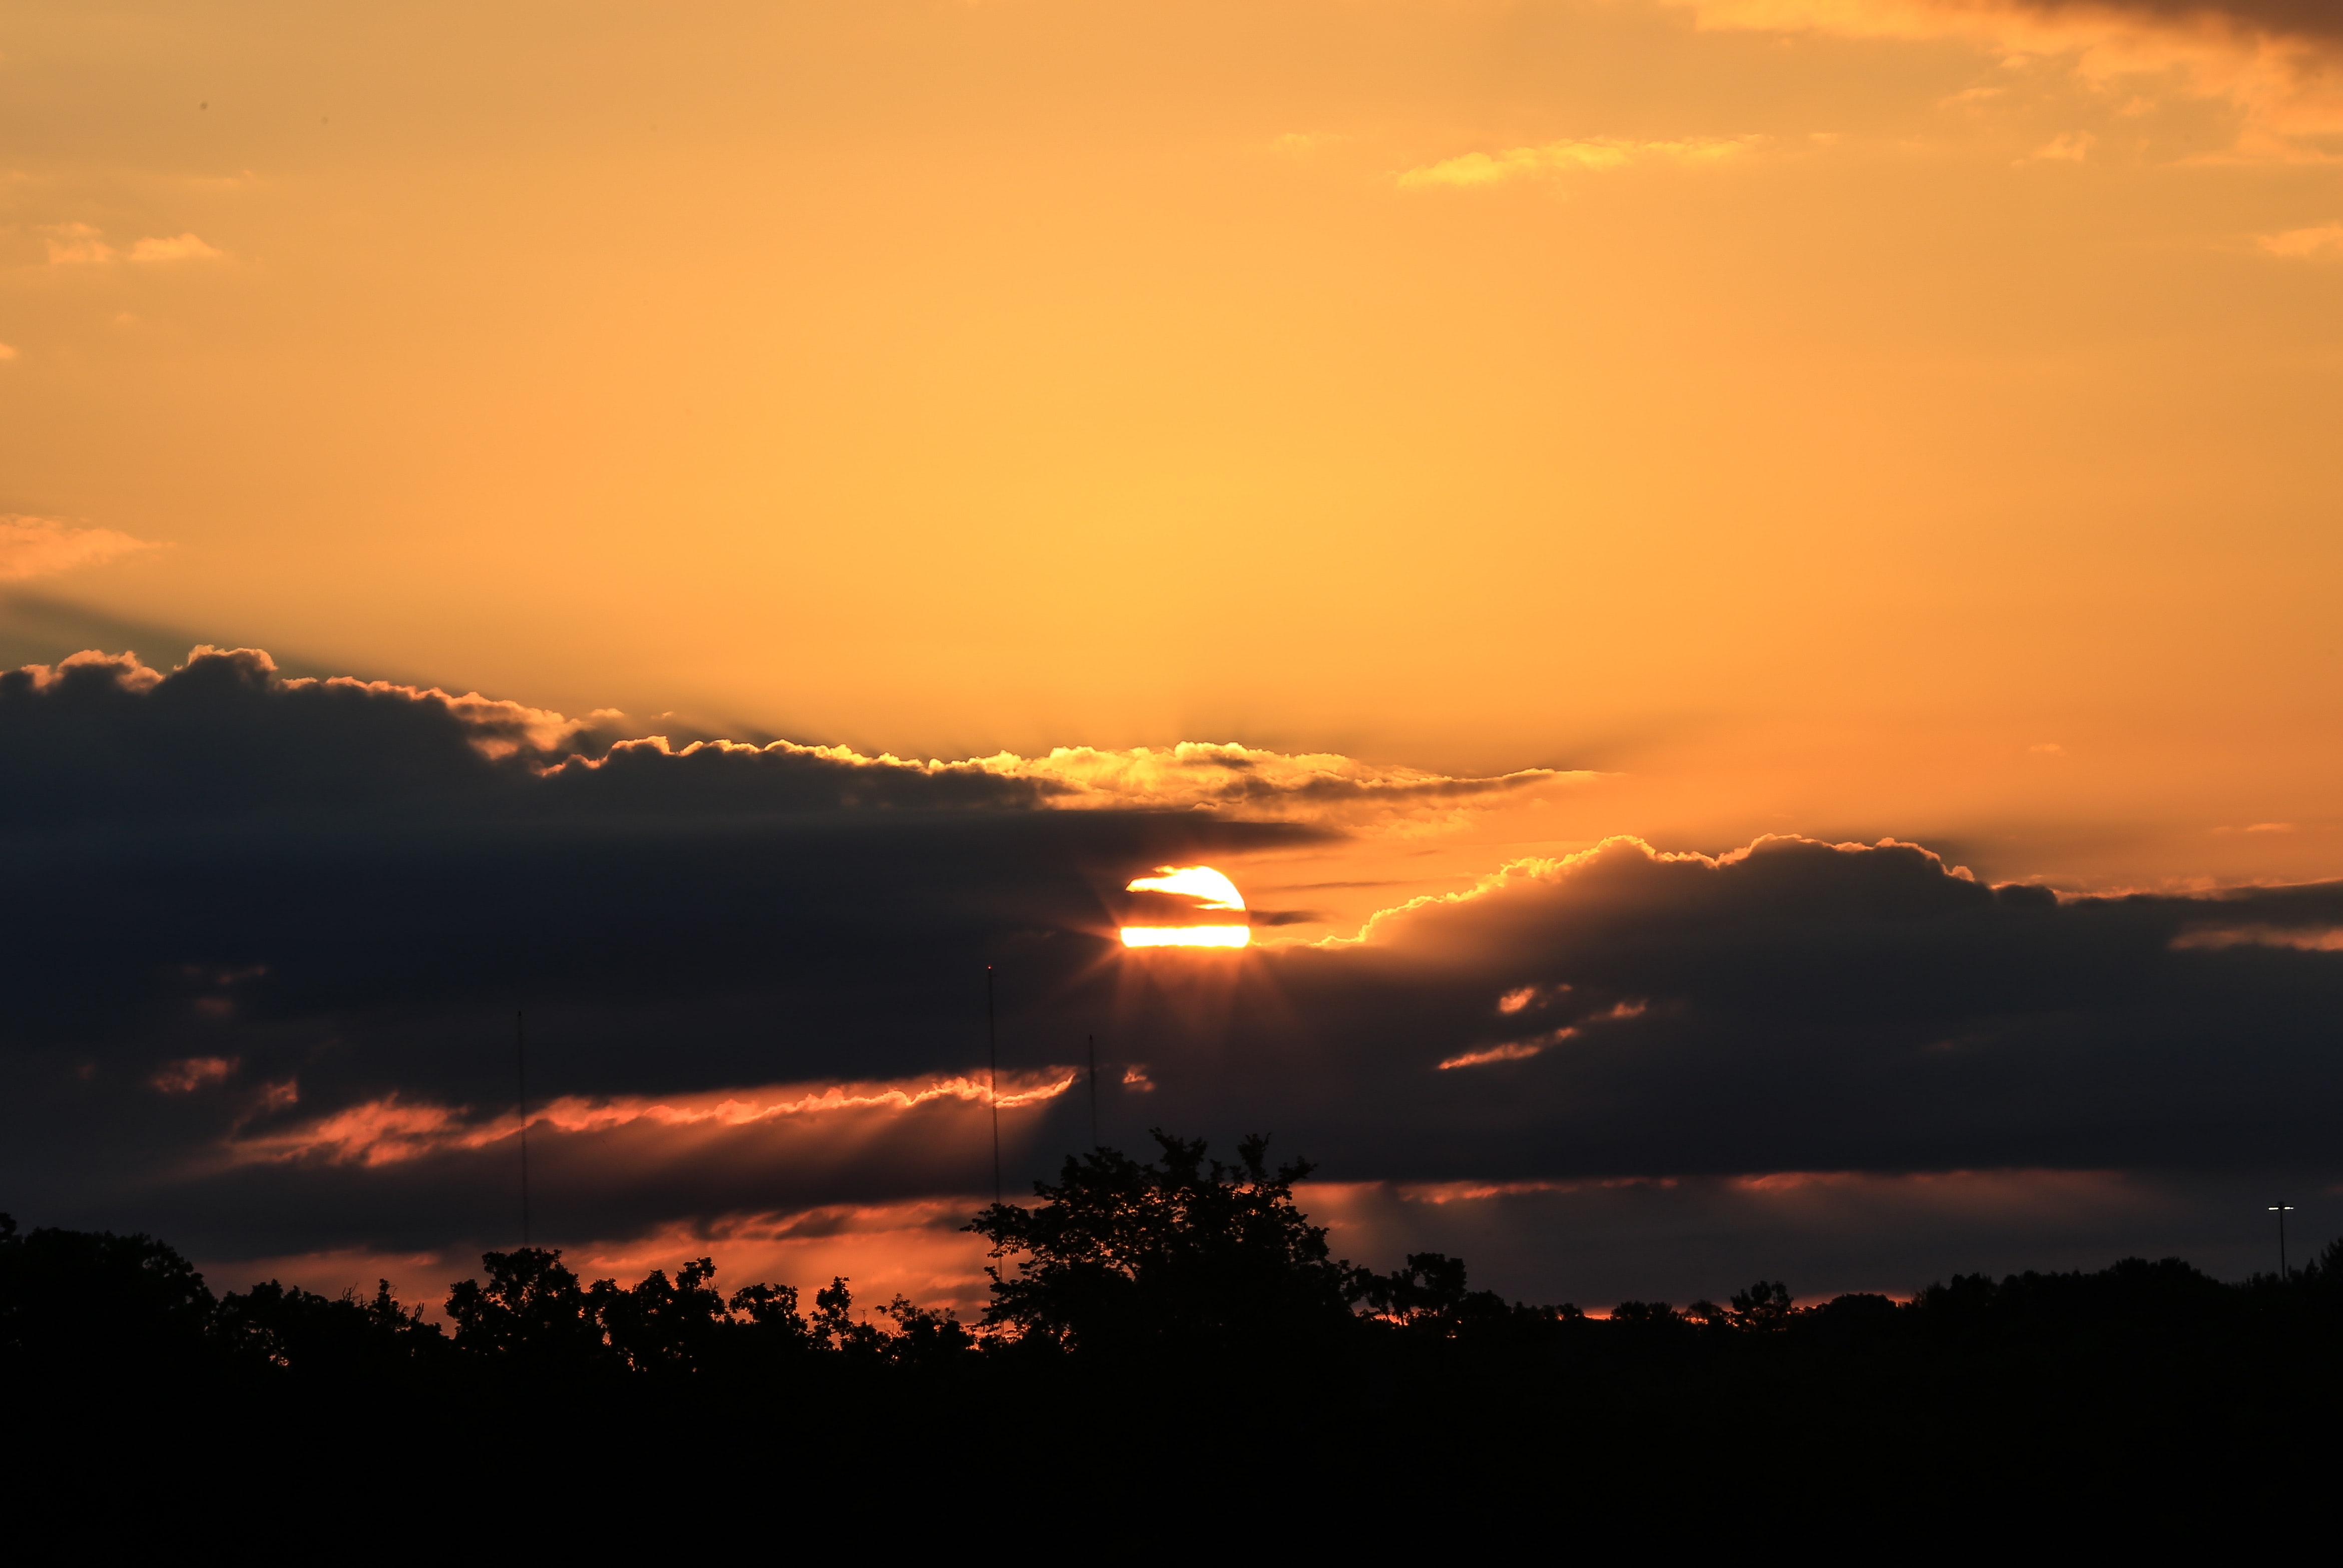 silhouette of trees under orange sky during sunset